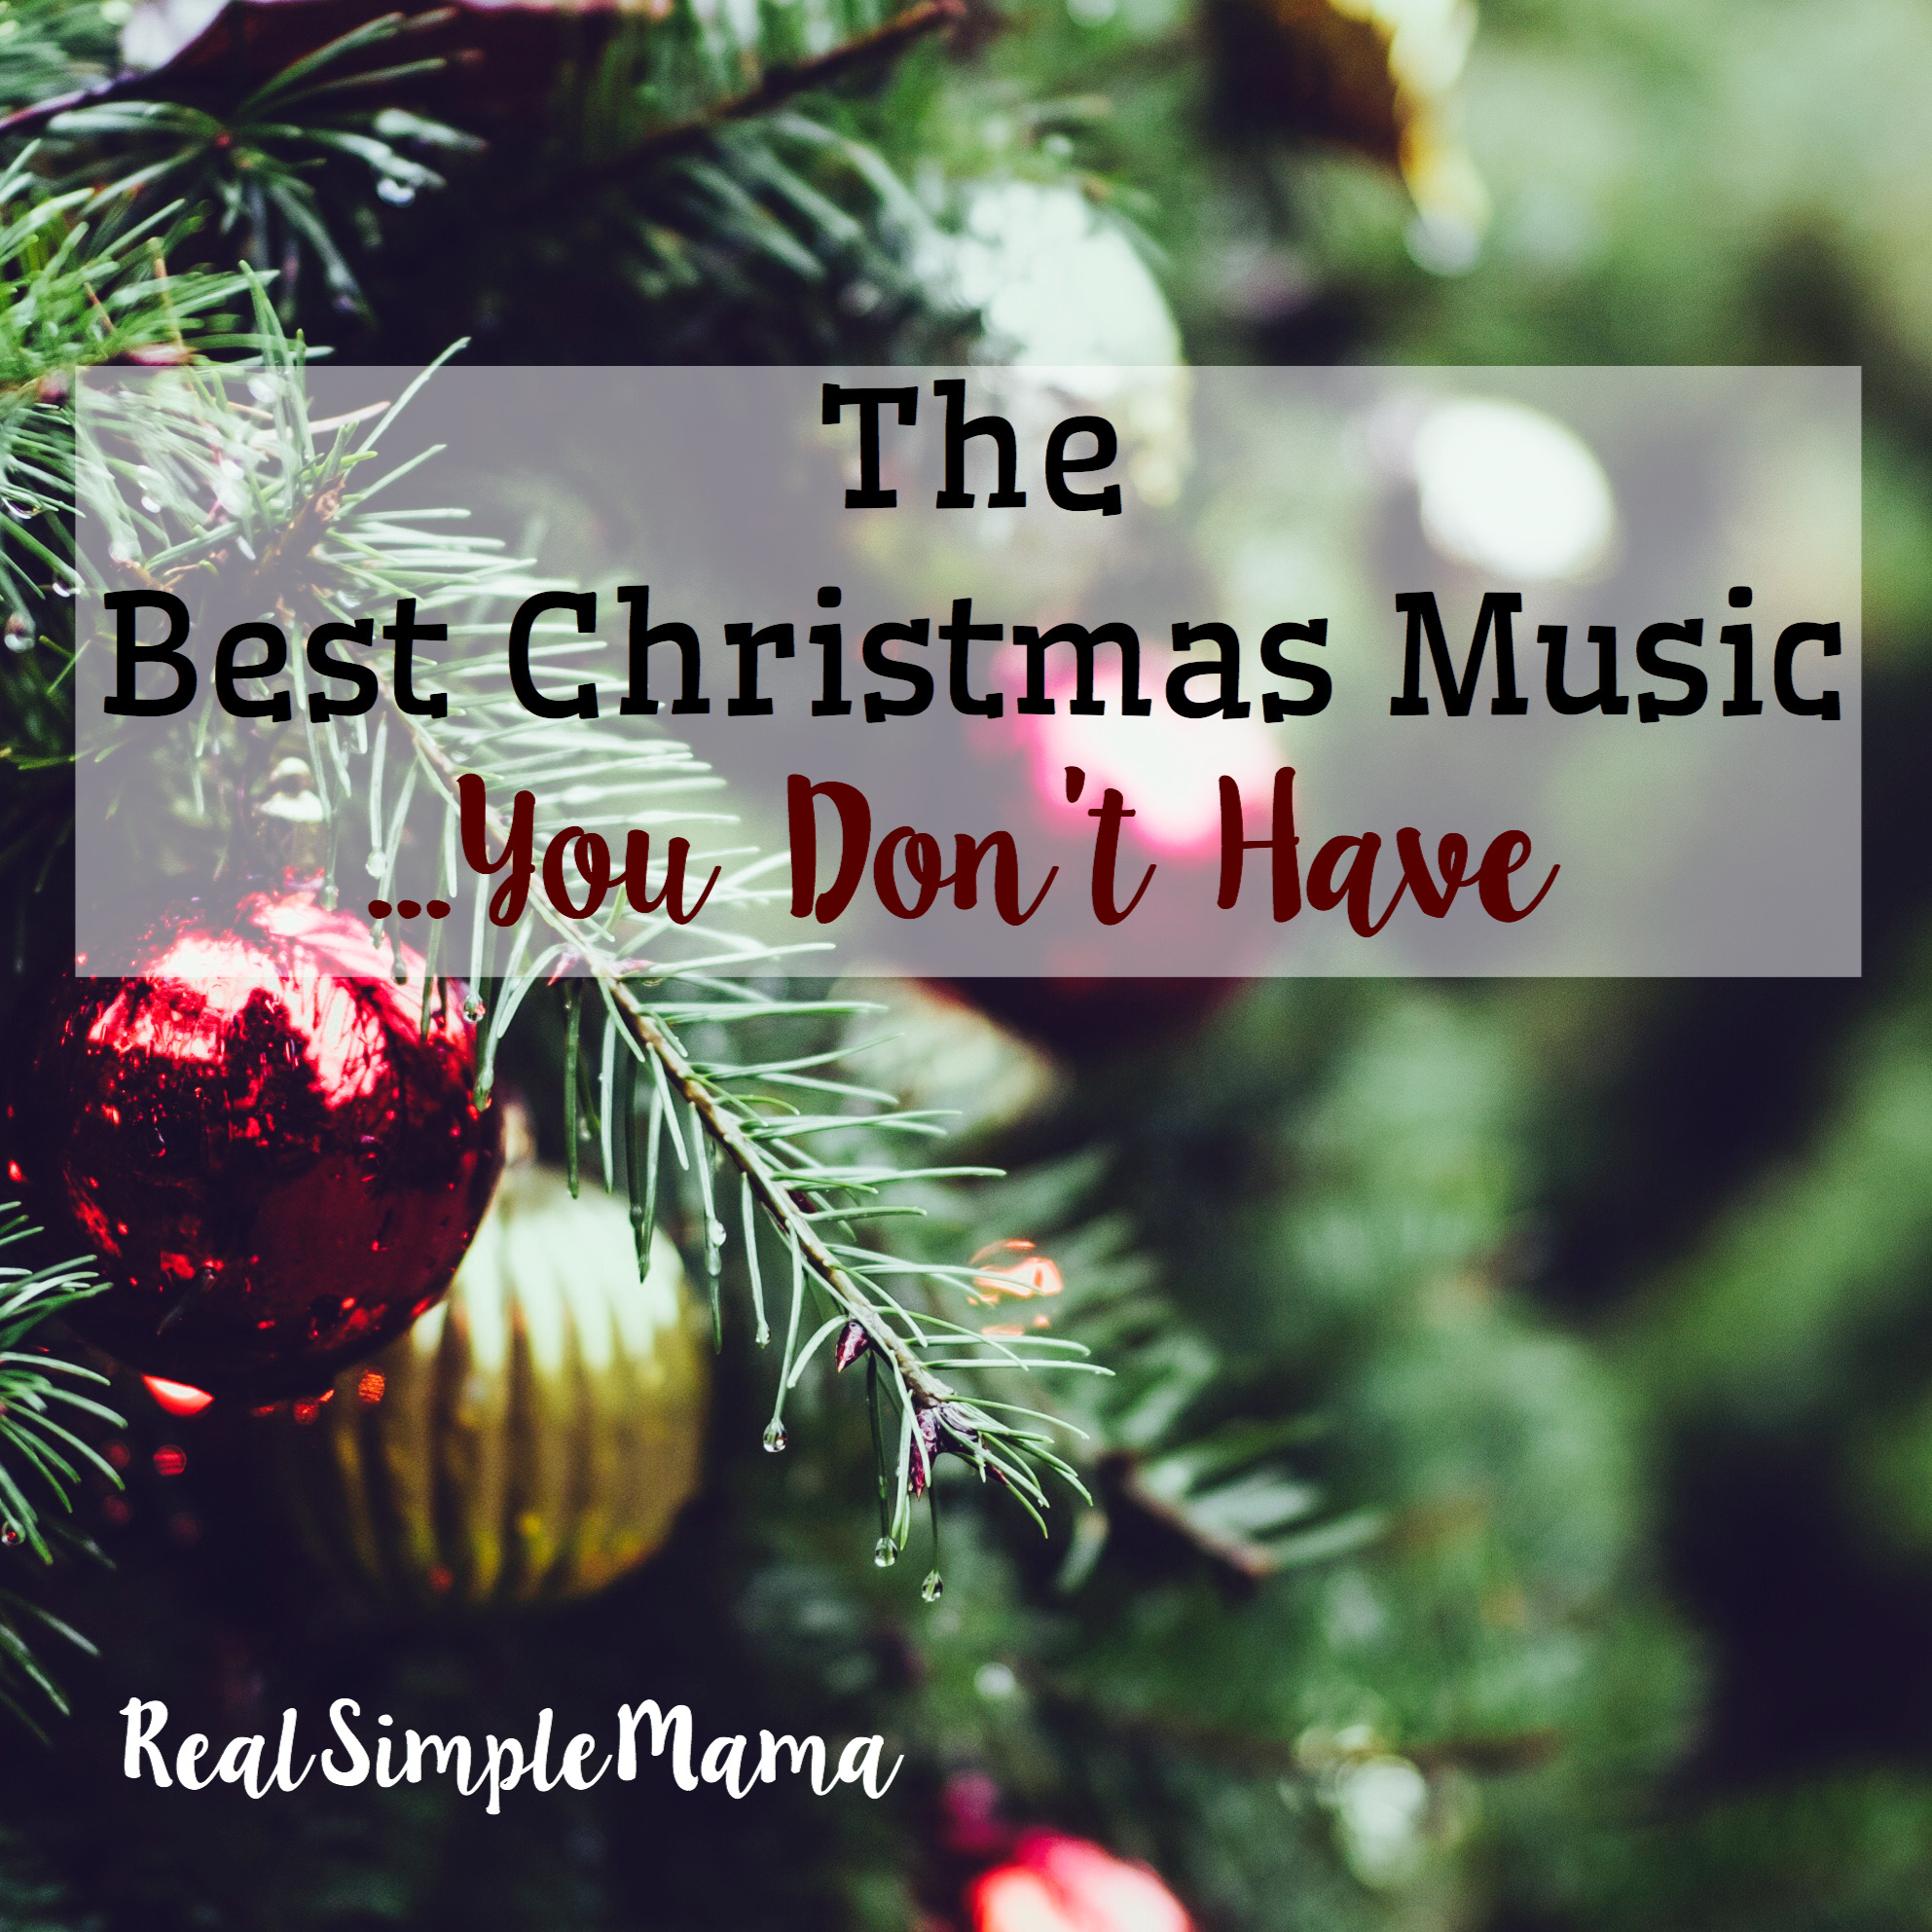 Best Christmas Music.The Best Christmas Music You Don T Have Real Simple Mama